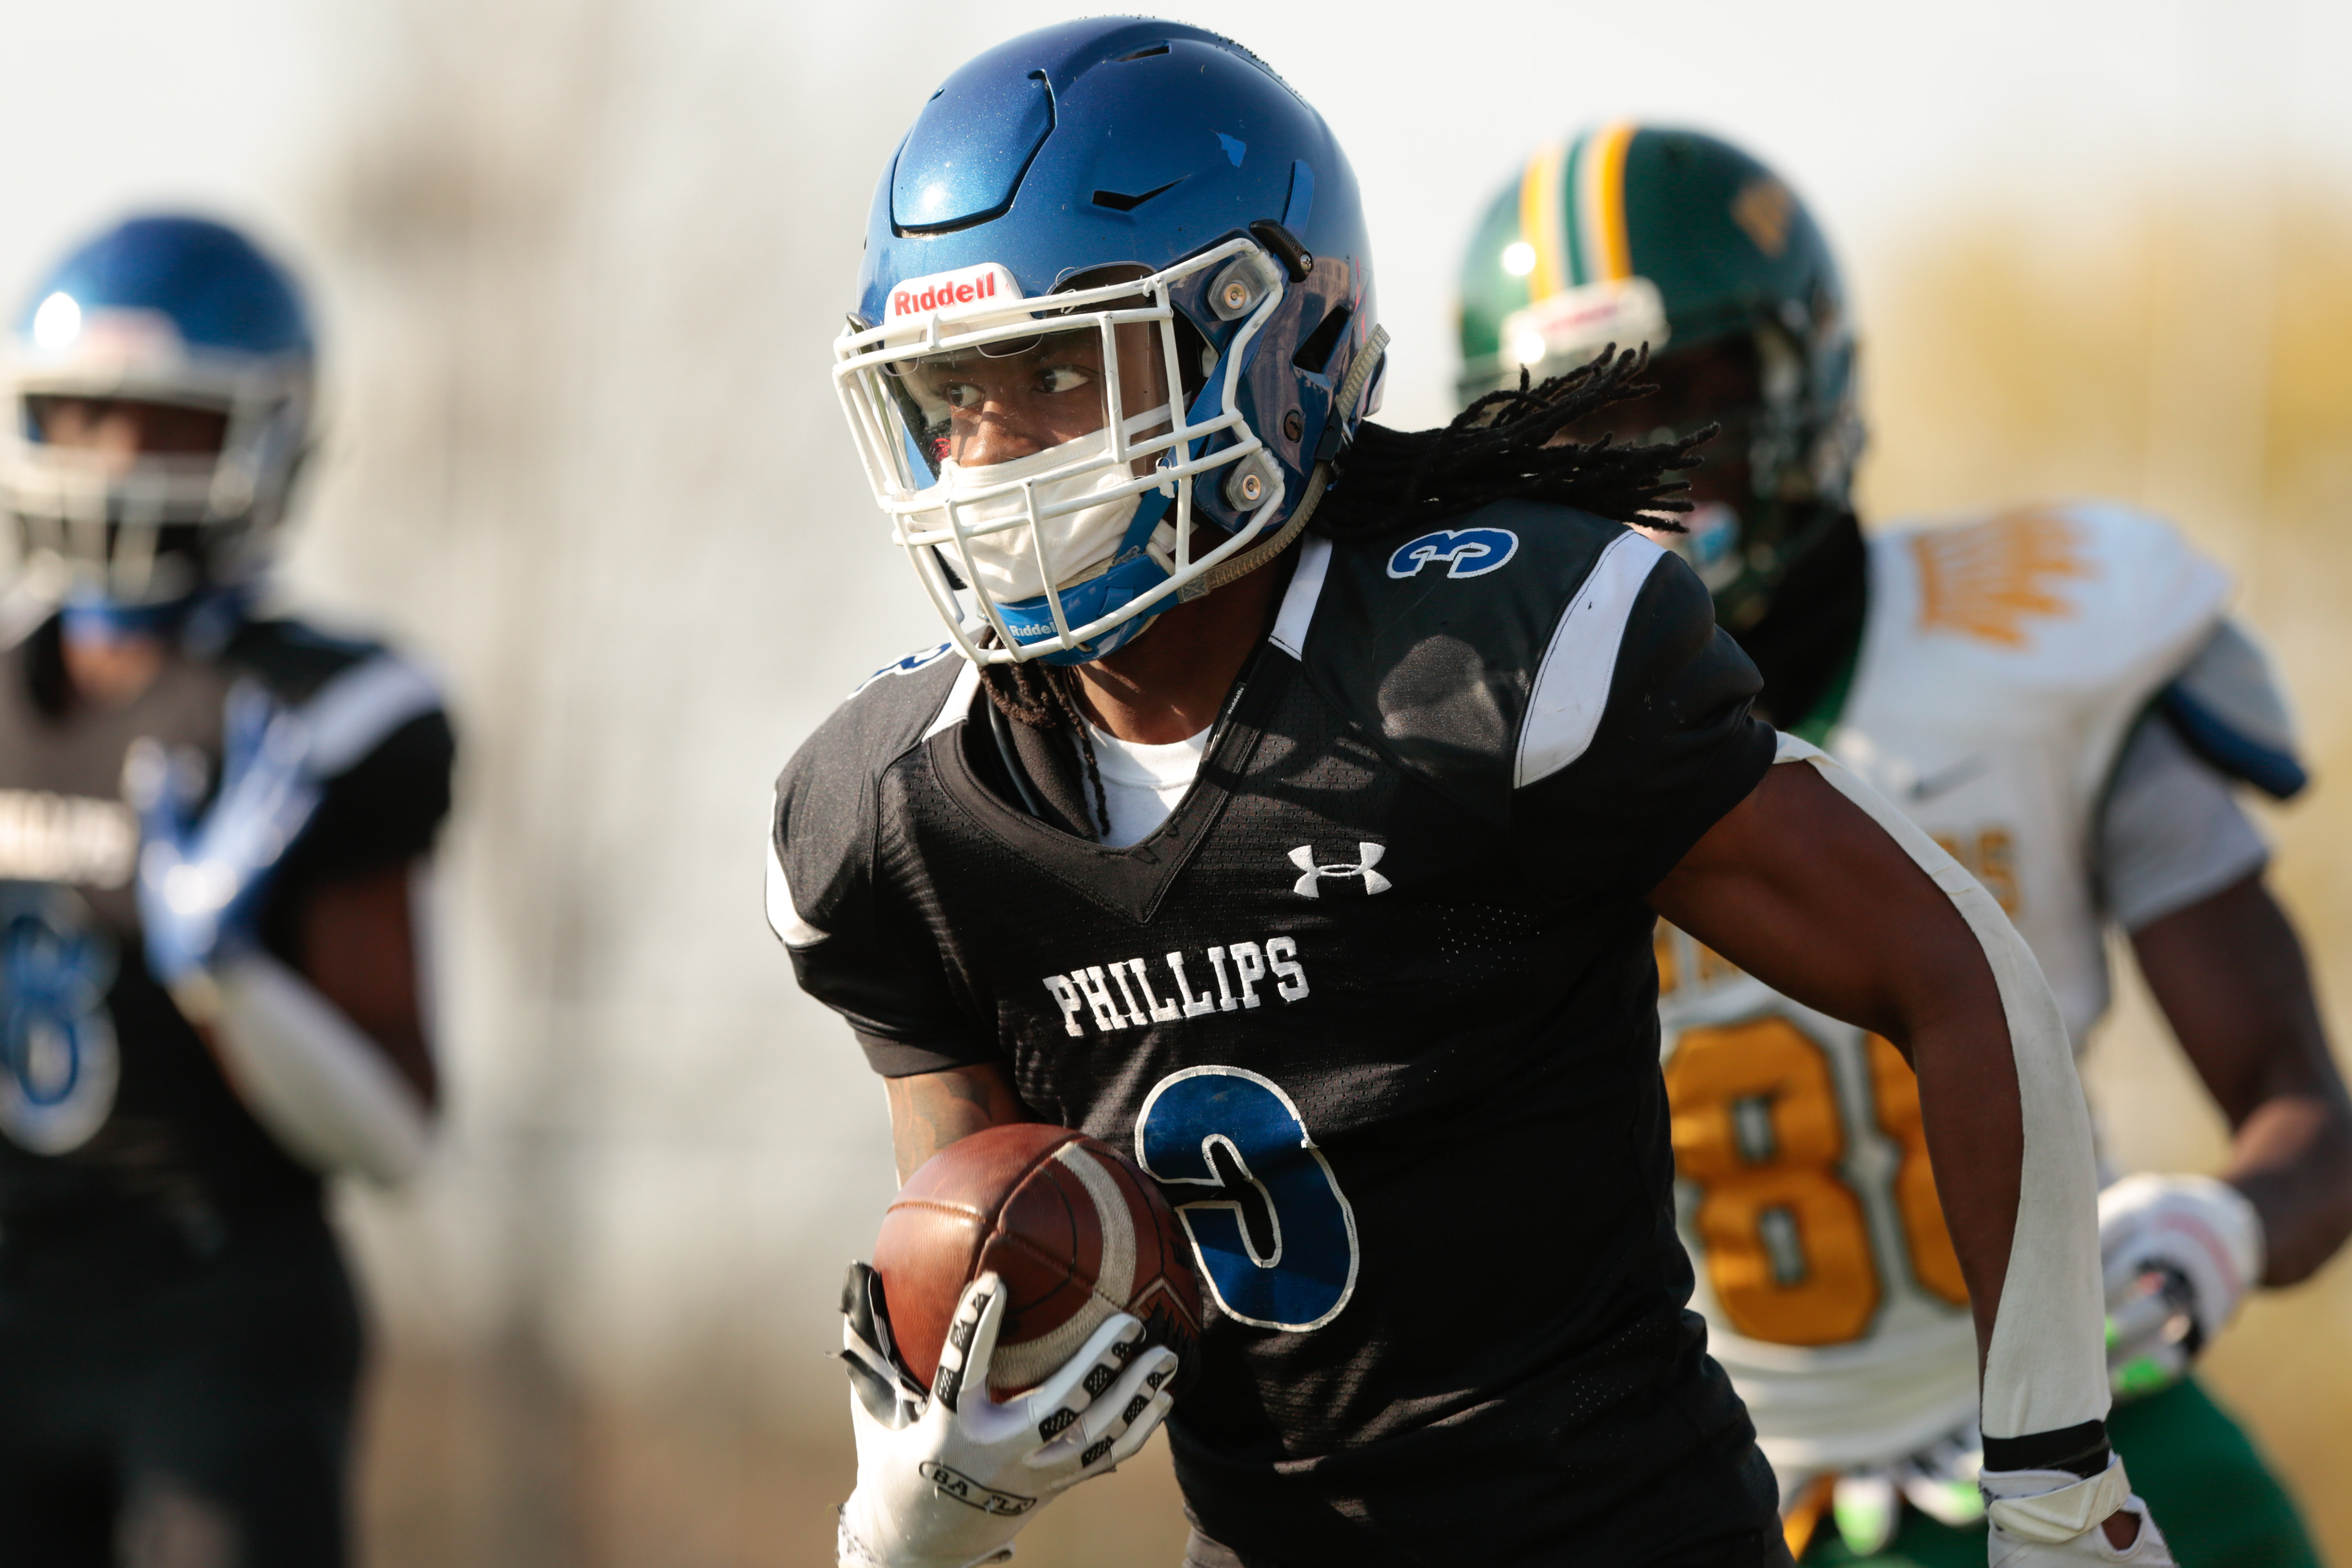 Phillips' Jacoby Erving (3) runs for a touchdown against Westinghouse.